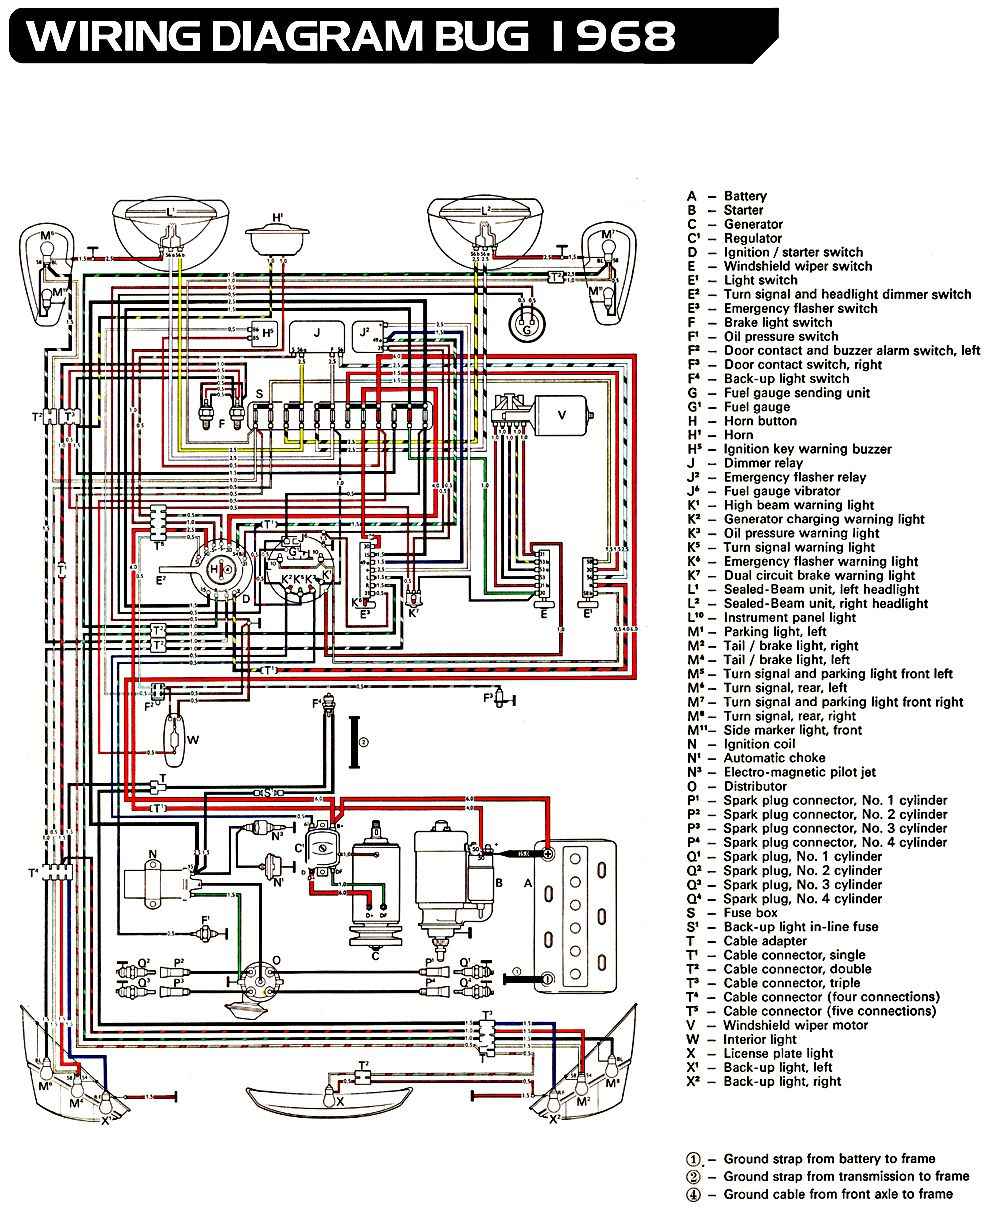 3a1908112d3826270ed5e3be362292bf vw bug ignition wiring diagram 73 vw wiring diagram free 1965 vw beetle wiring diagram at nearapp.co